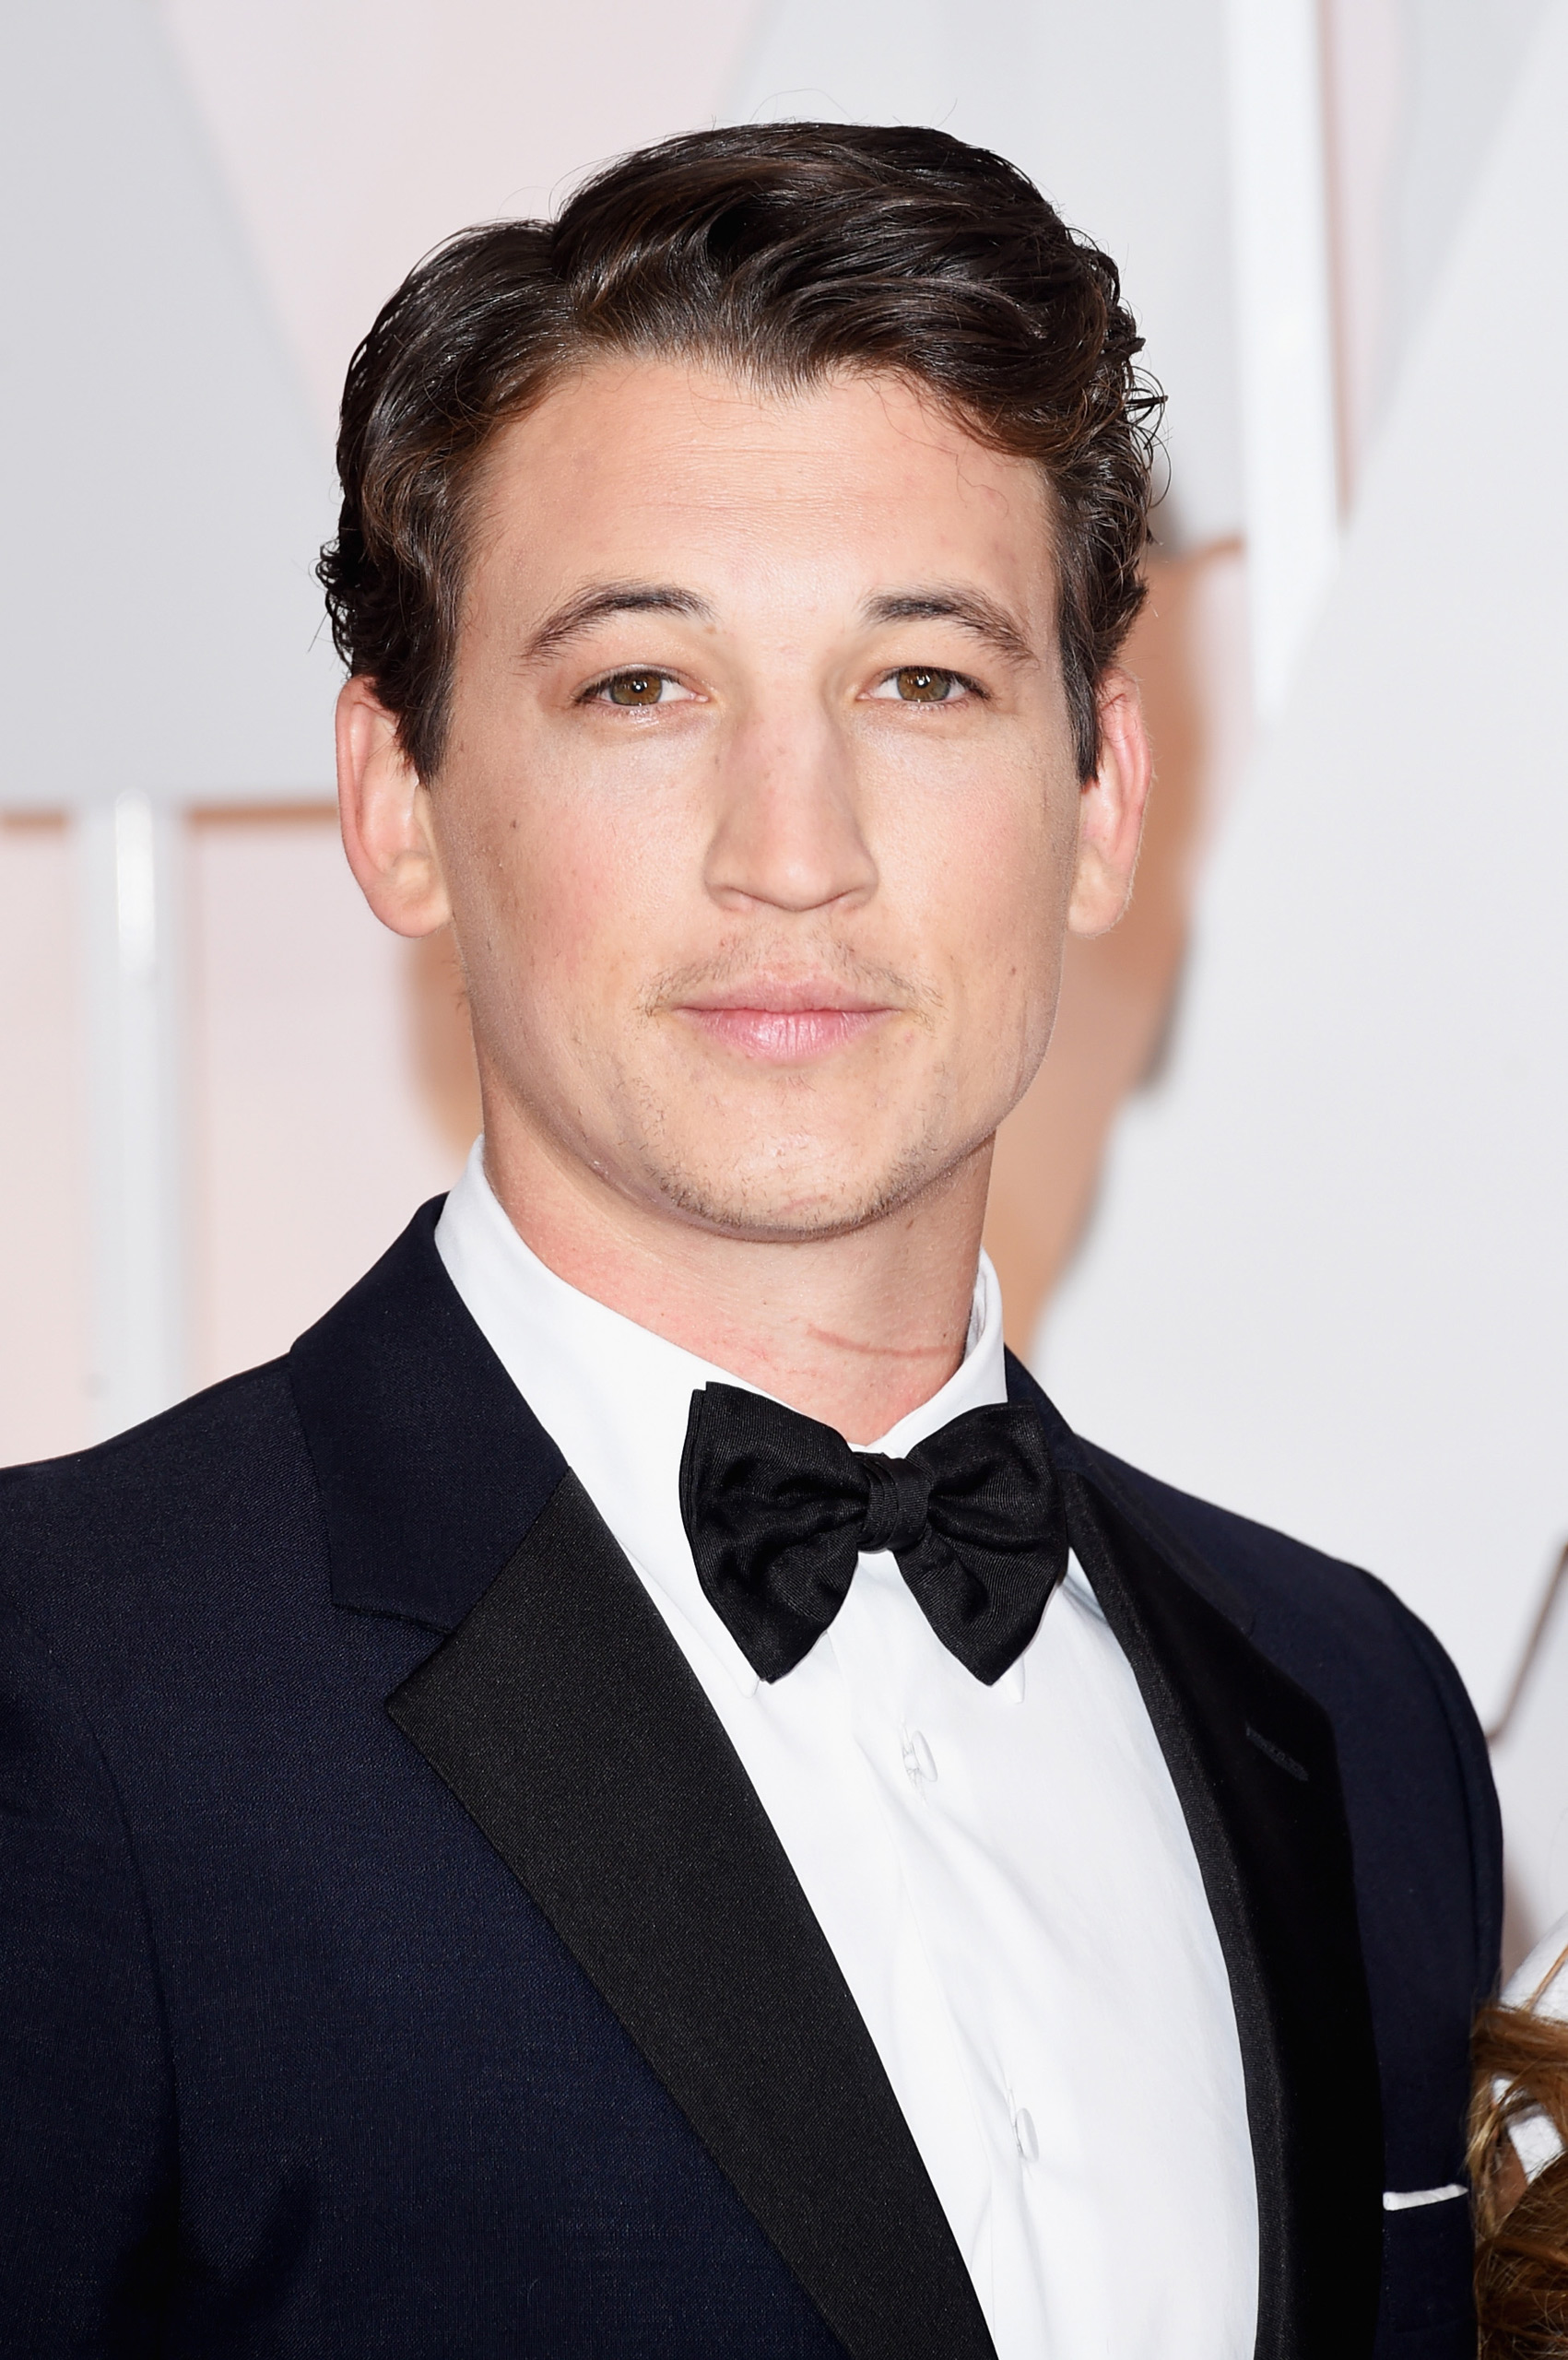 Miles Teller attends the 87th Annual Academy Awards on Feb. 22, 2015 in Hollywood, Calif.